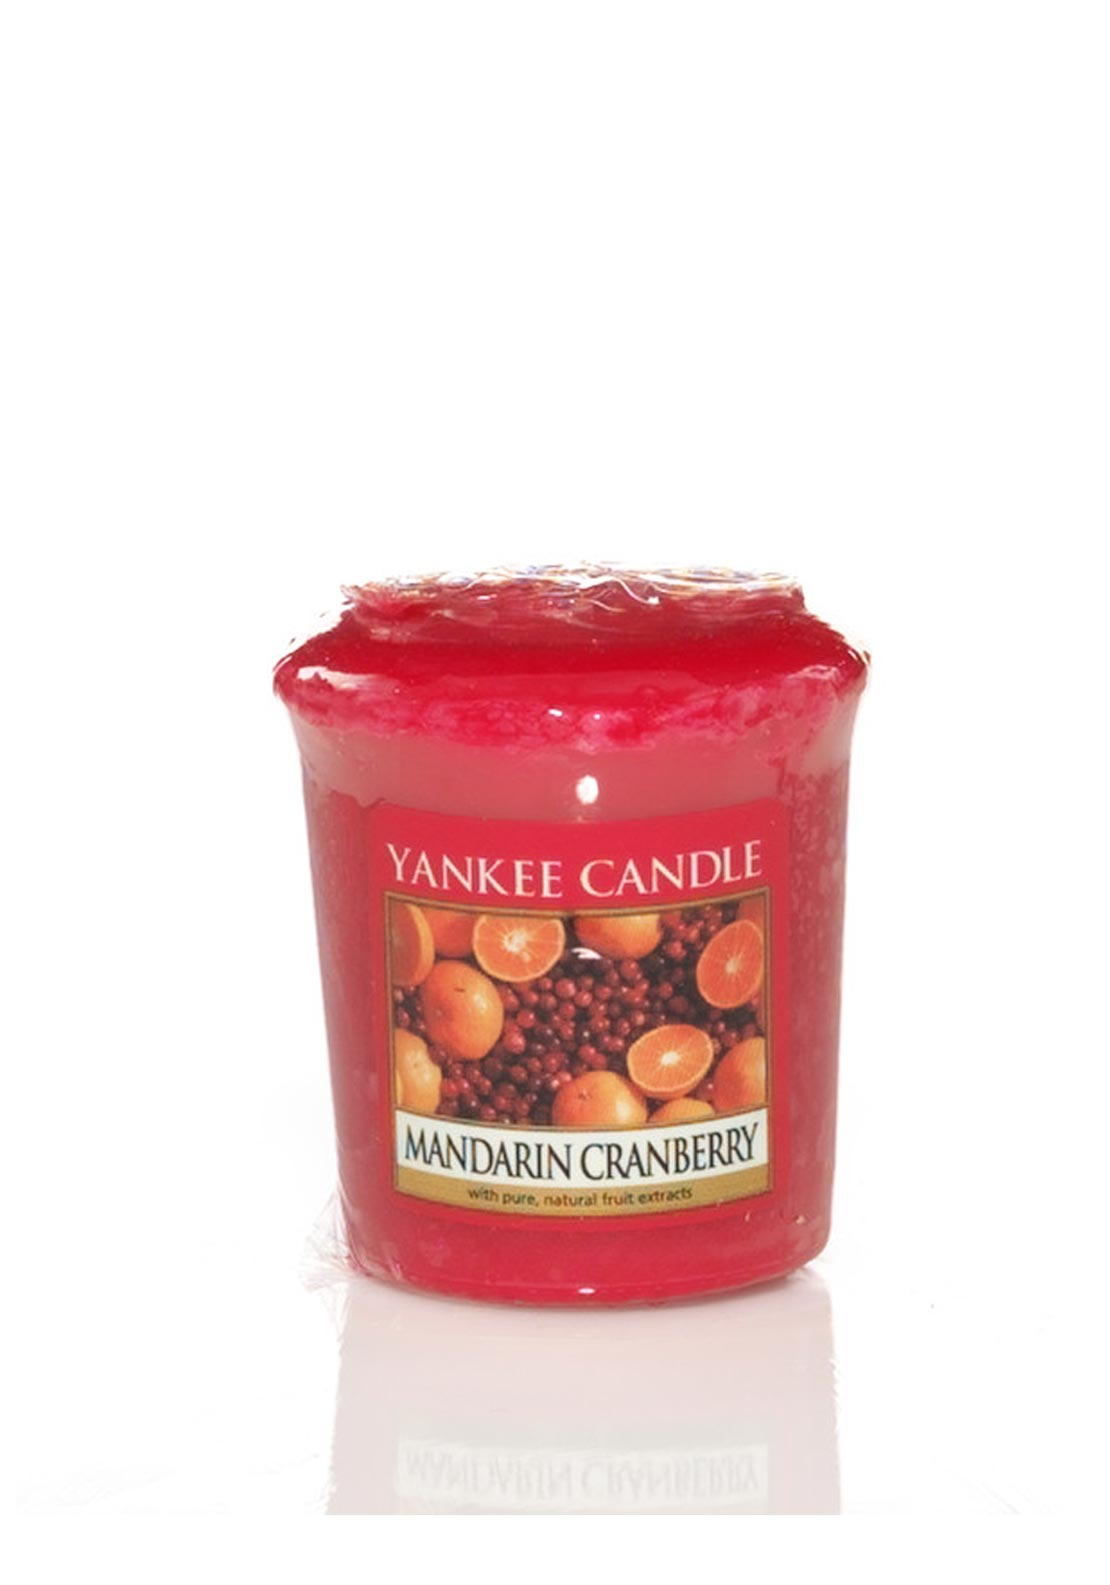 Yankee Candle Sampler Votive Candle, Mandarin Cranberry